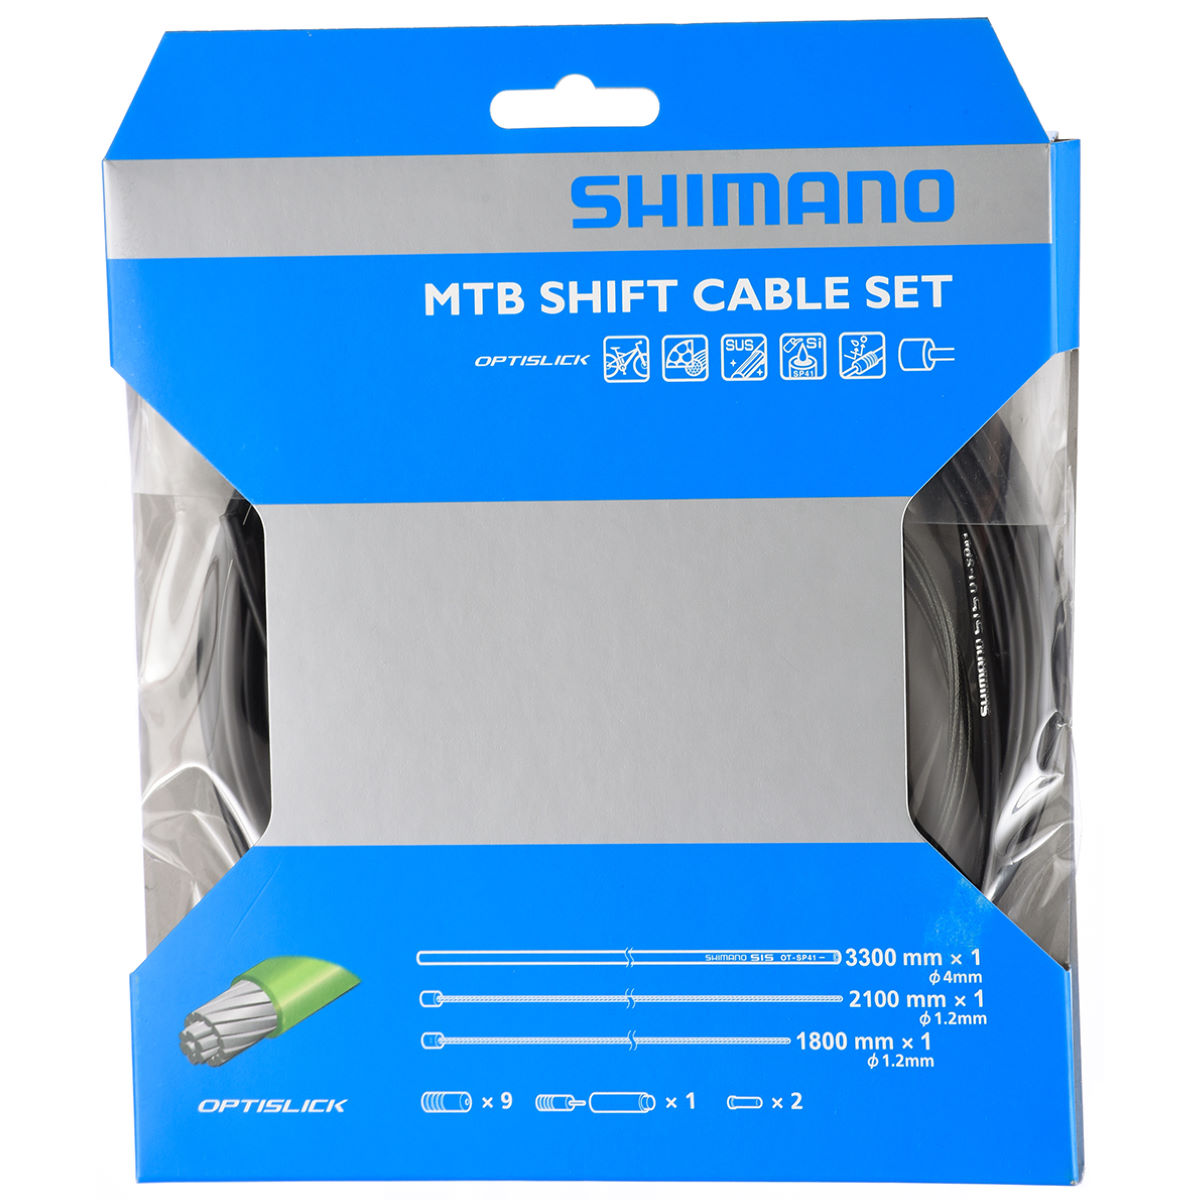 Câbles de vitesses Shimano XT M8000 OPTISLICK - n/a Neutral